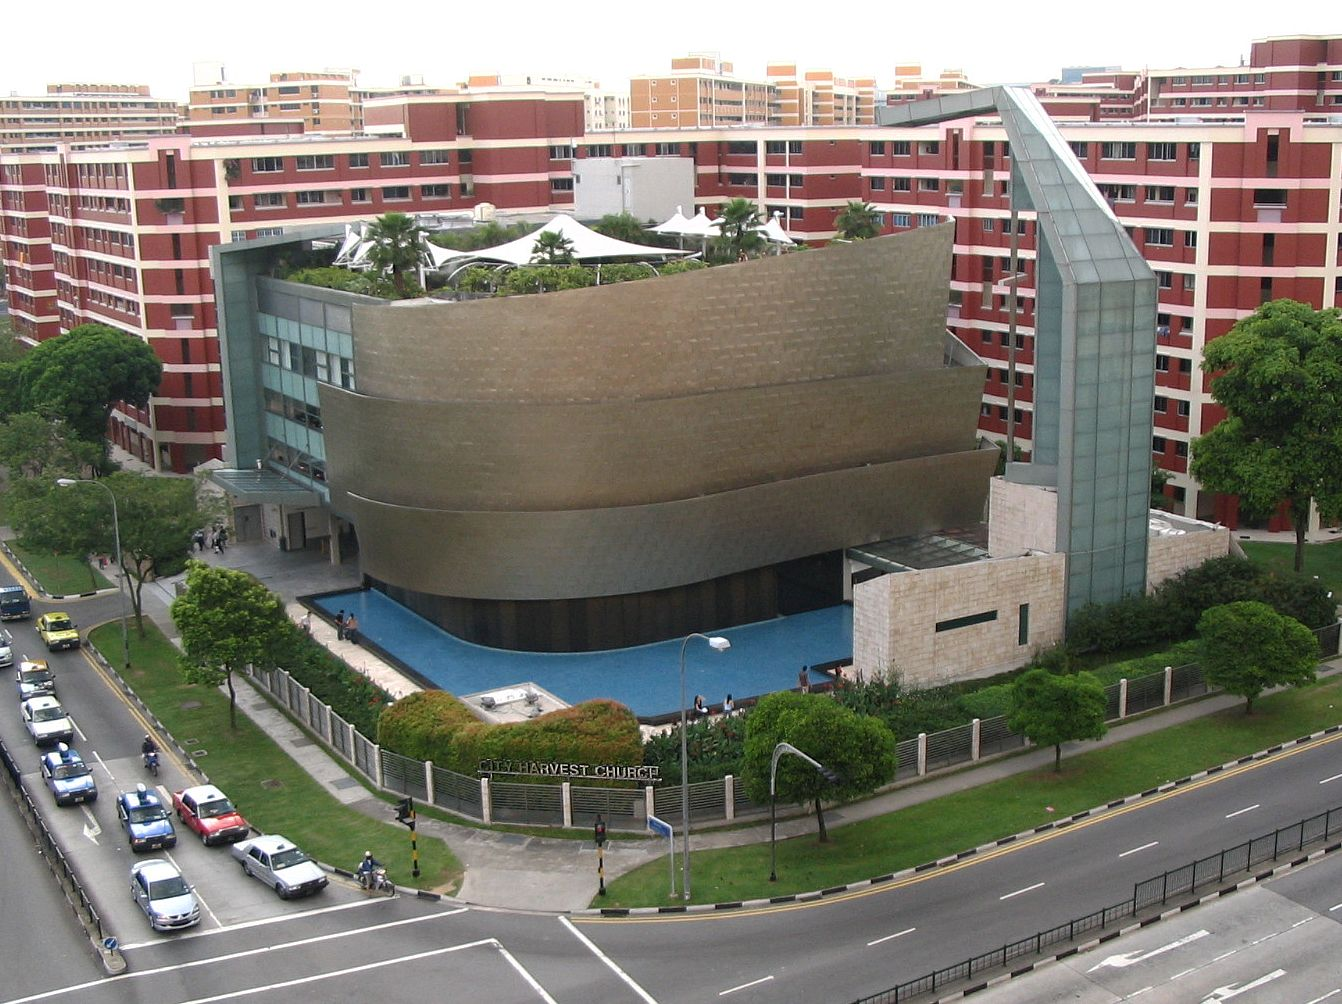 File:CITY HARVEST CHURCH Jurong West Building.jpg - Wikipedia, the ...